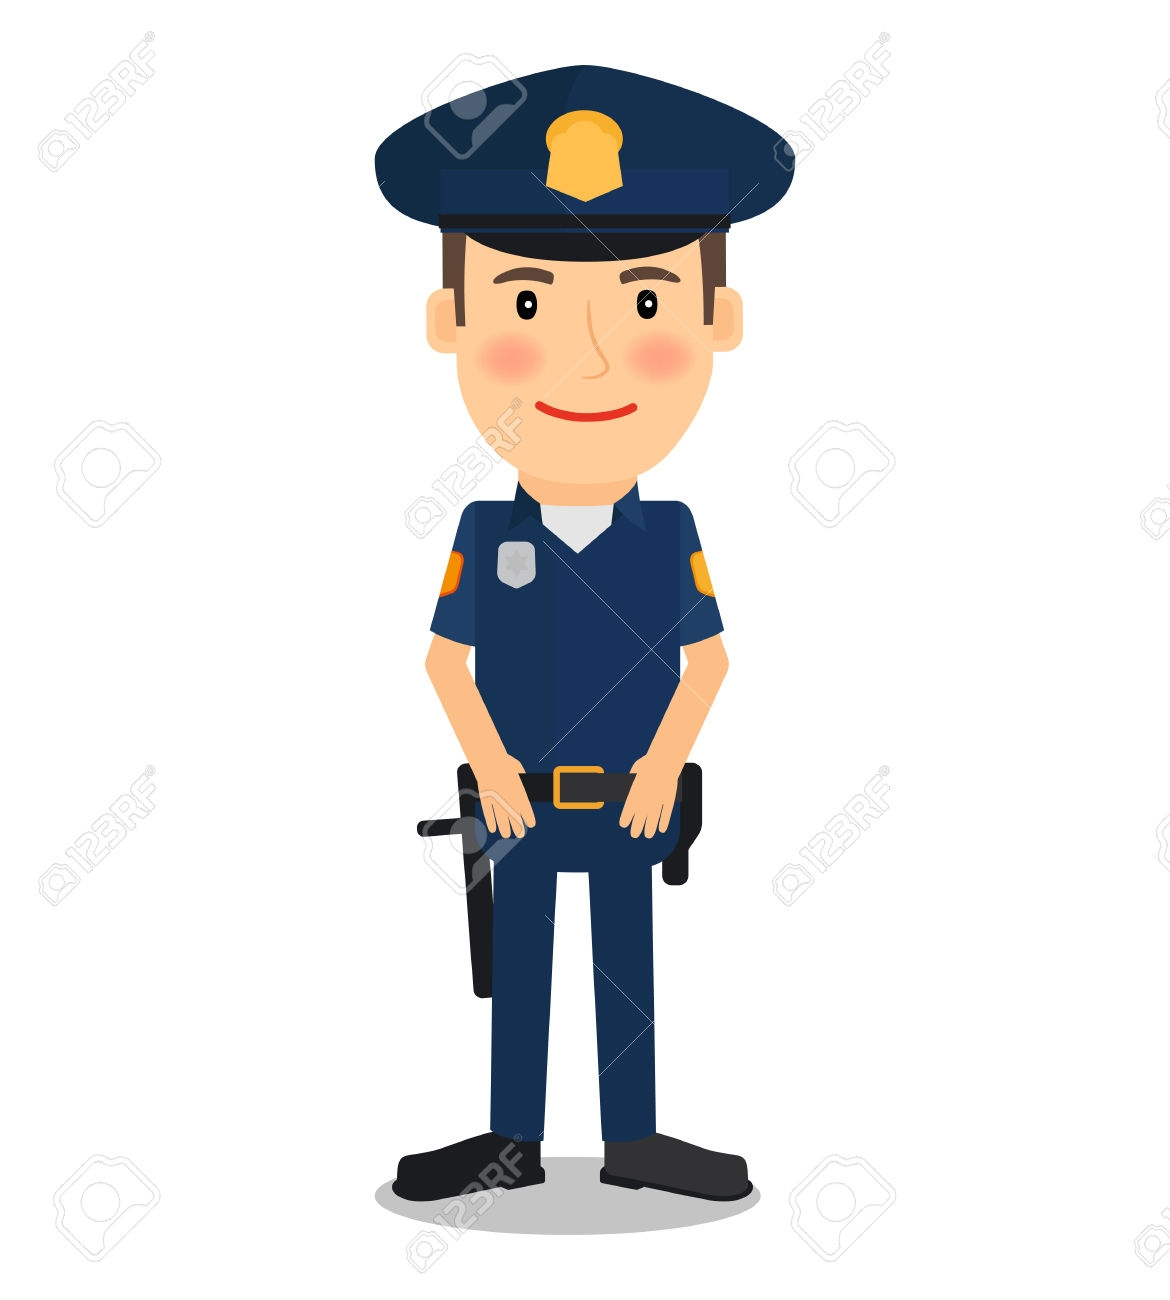 Policeman clipart Best of Cop clipart police officer Pencil.